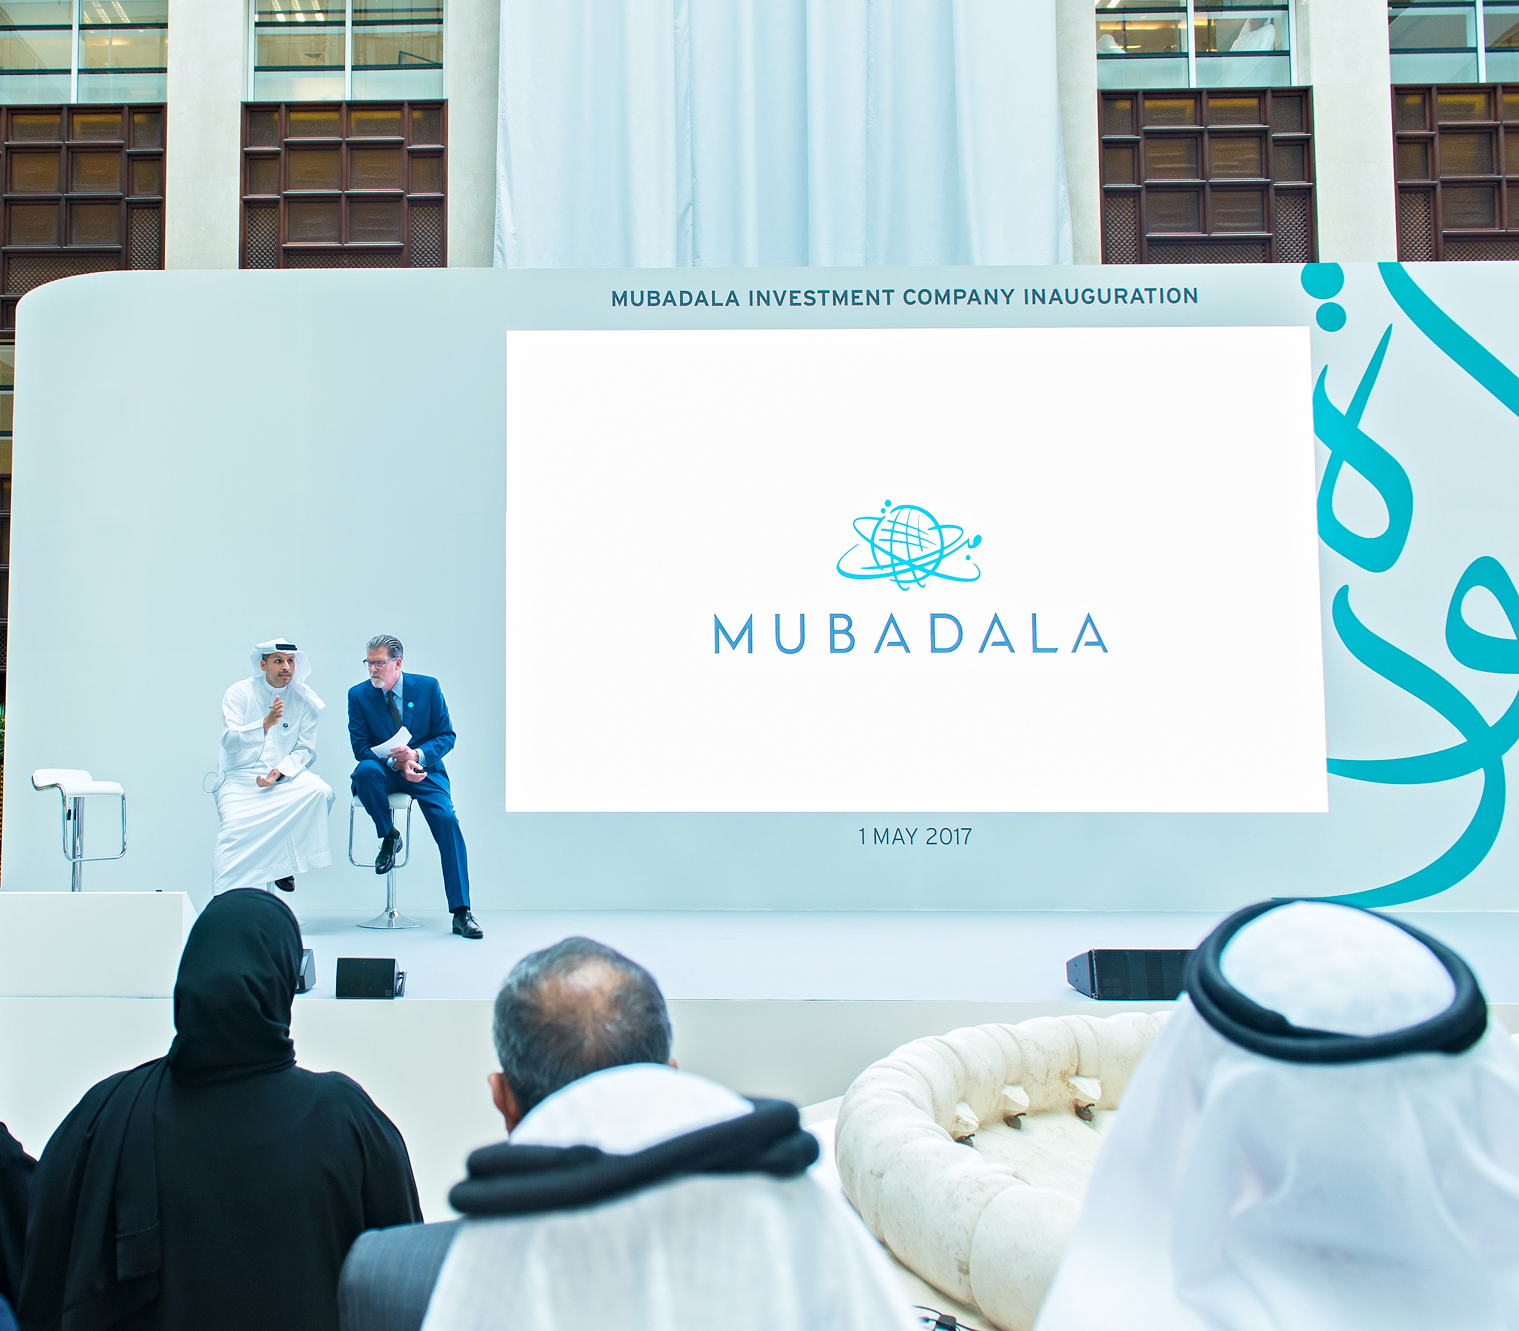 mubadala investment company day 1